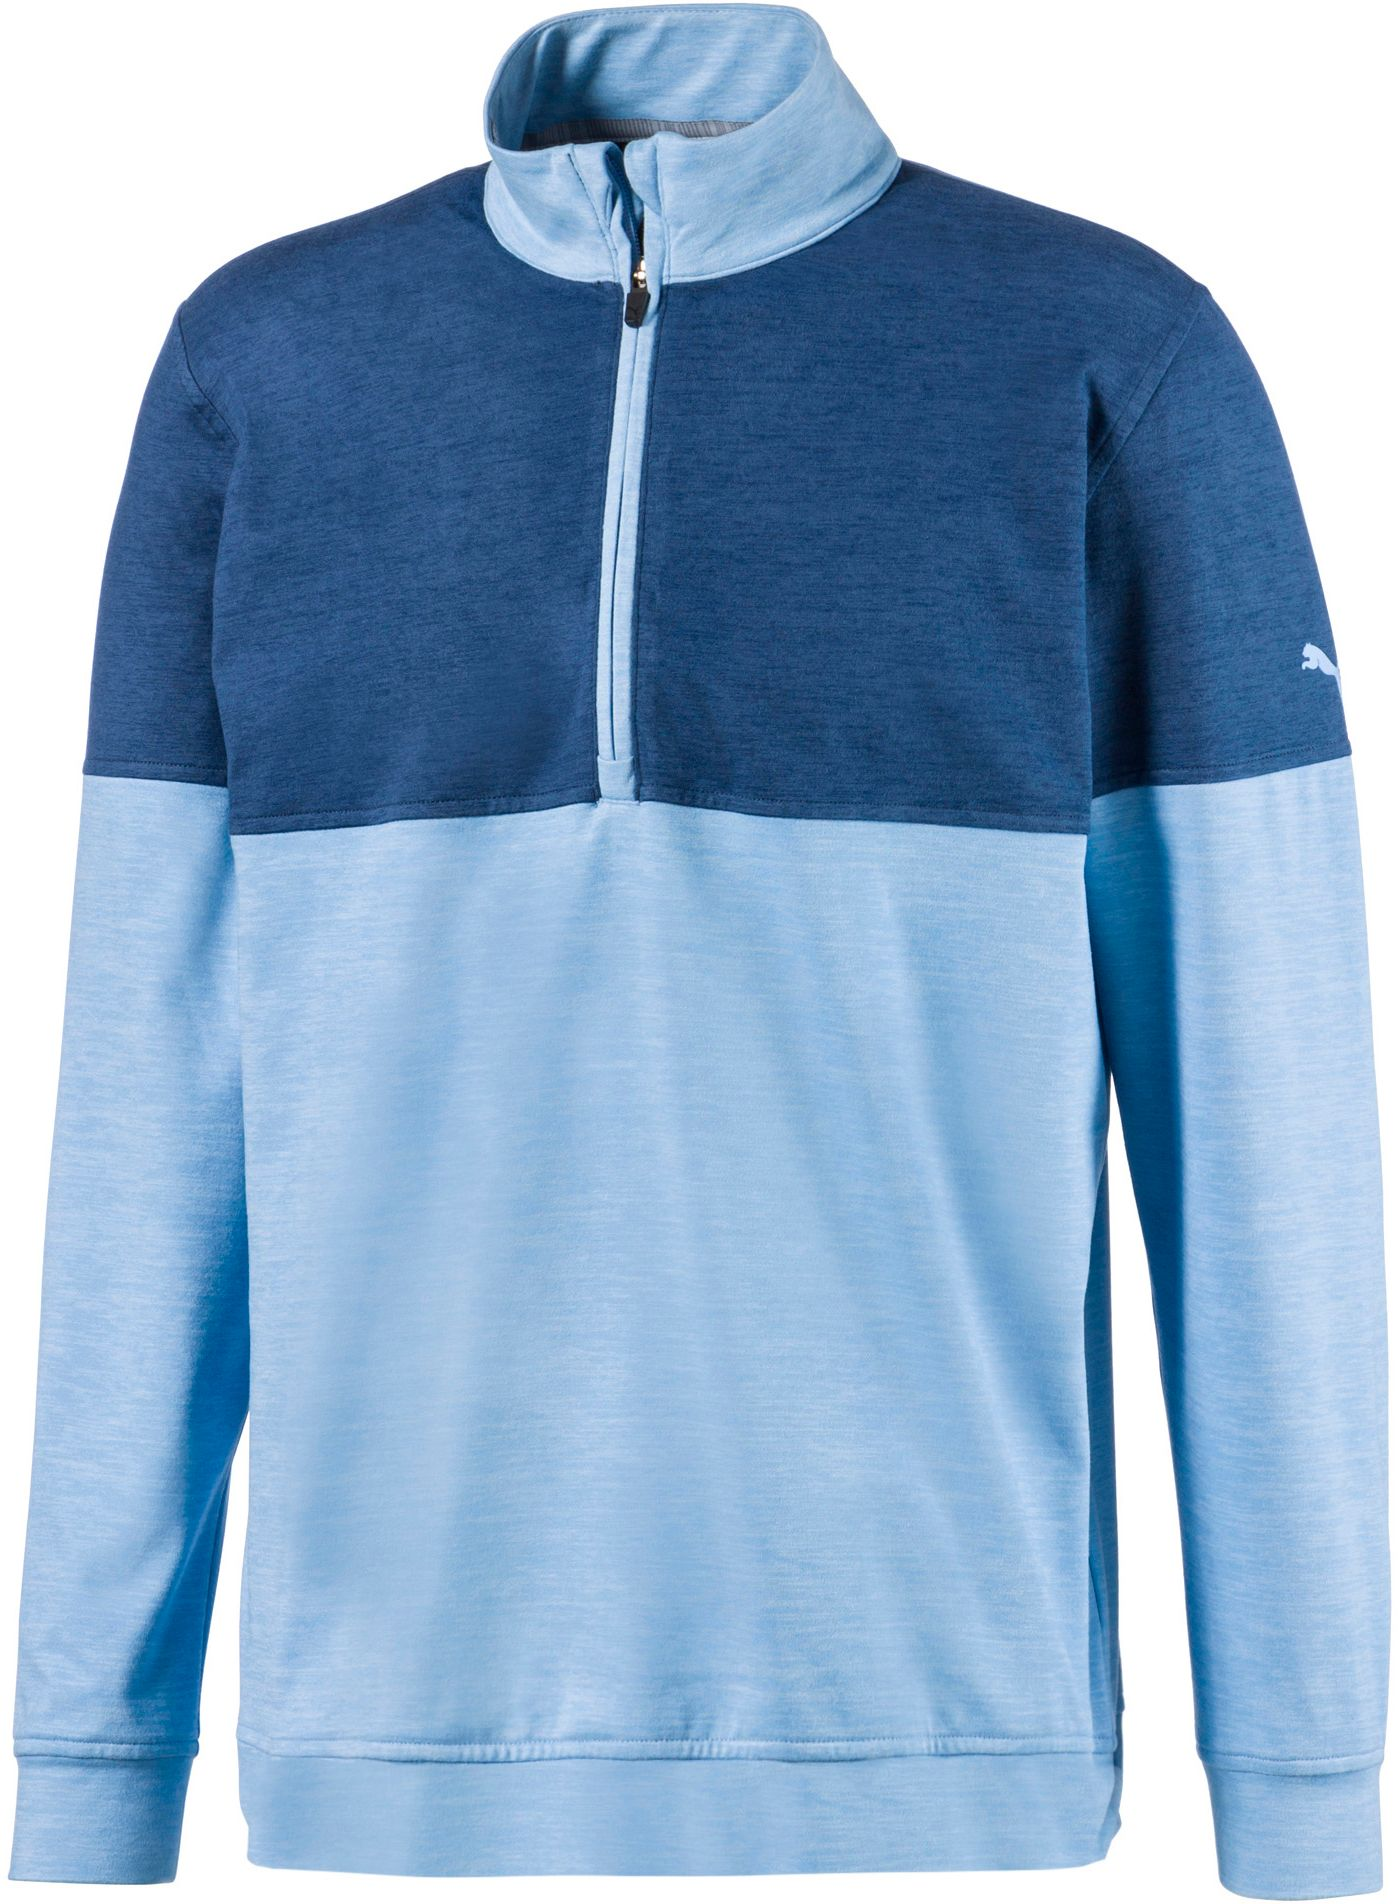 PUMA Men's Warm Up ¼ Zip Golf Pullover